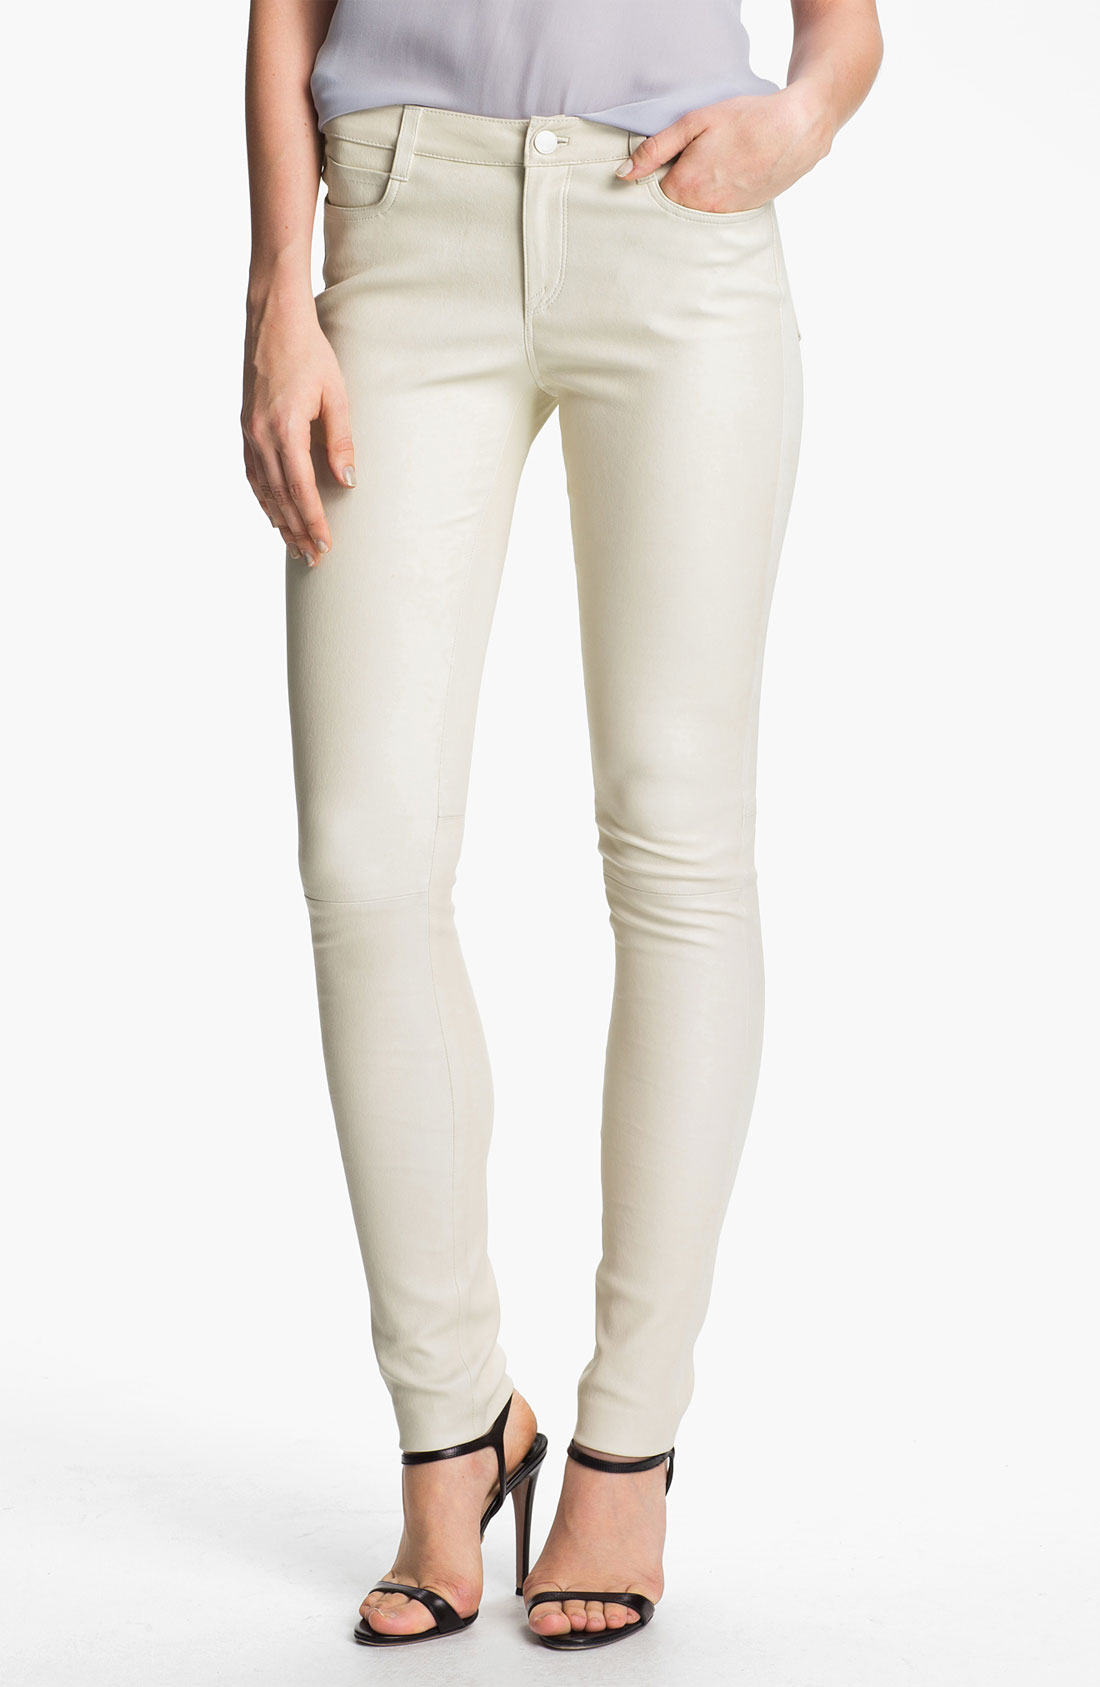 Model Buy Dazzling White Baggy Leather Pant For Women Online